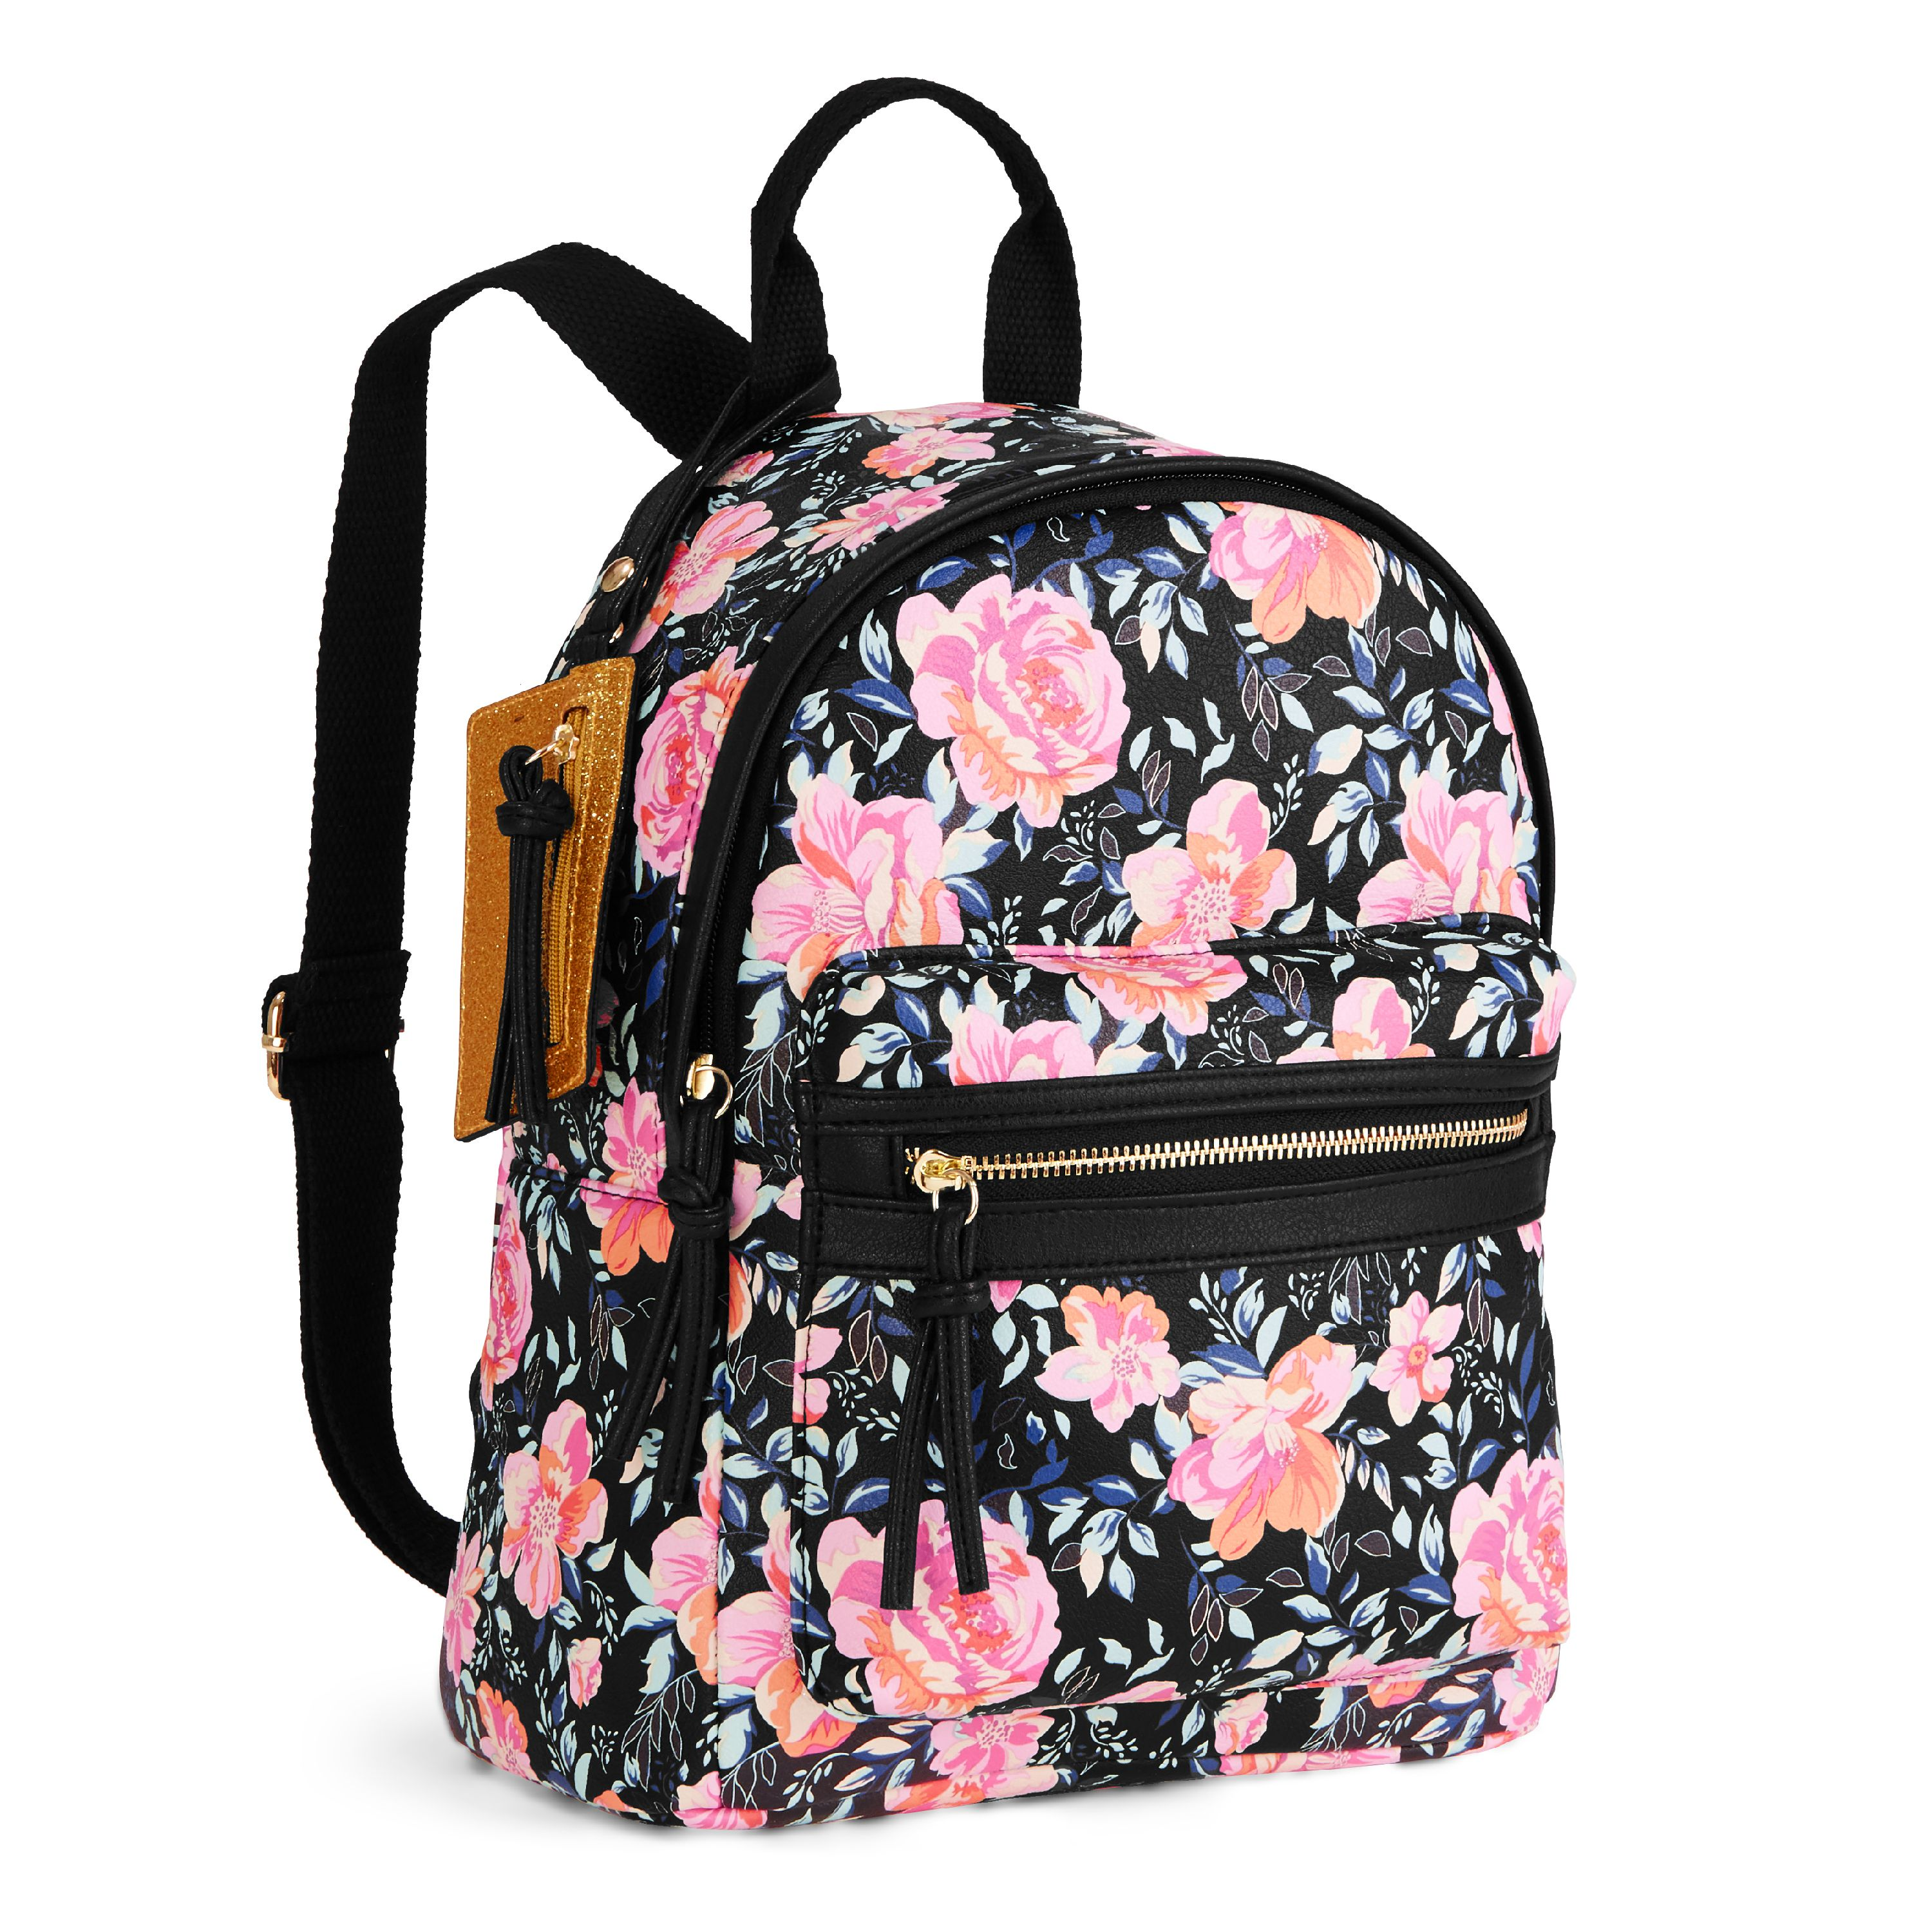 No Boundaries Black Floral Mini Dome Backpack